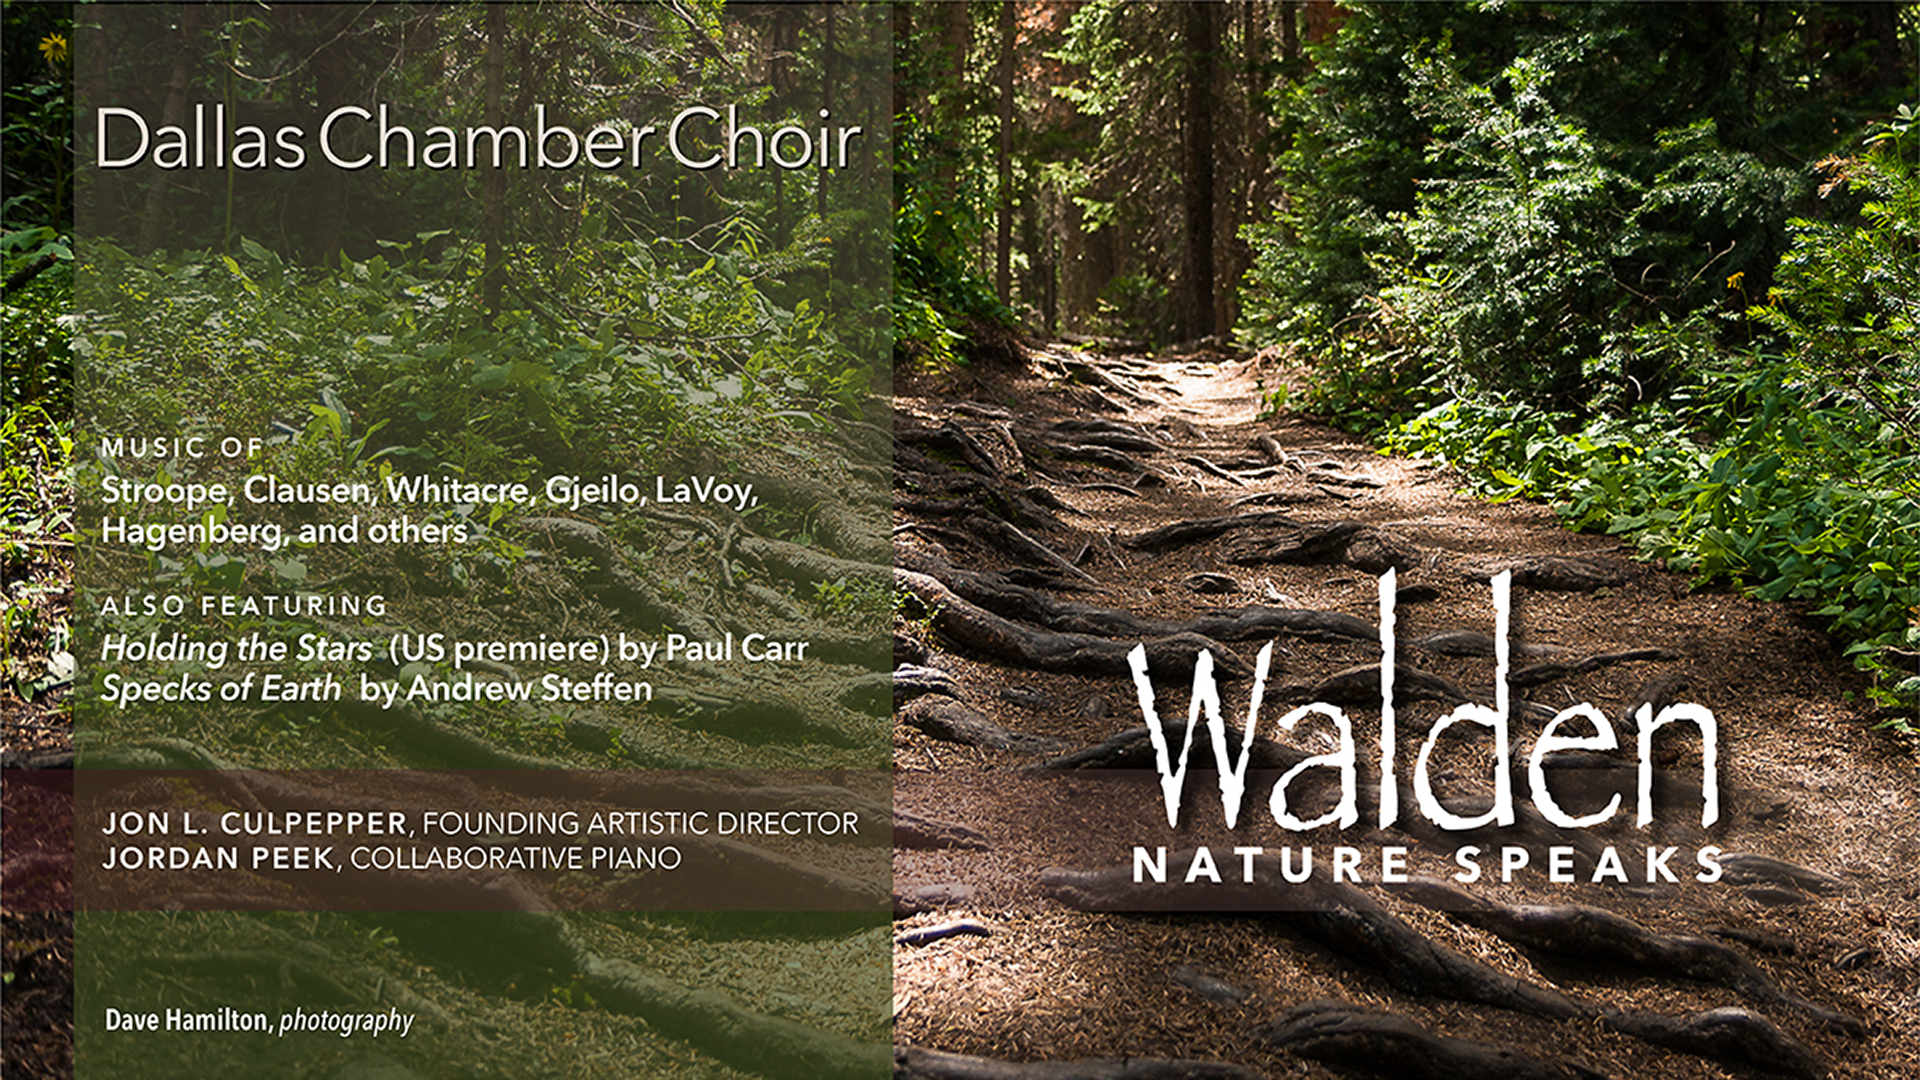 Purchase tickets online:  https://www.eventbrite.com/e/walden-nature-speaks-saturday-091419-dallas-chamber-choir-moody-performance-hall-tickets-69597543125